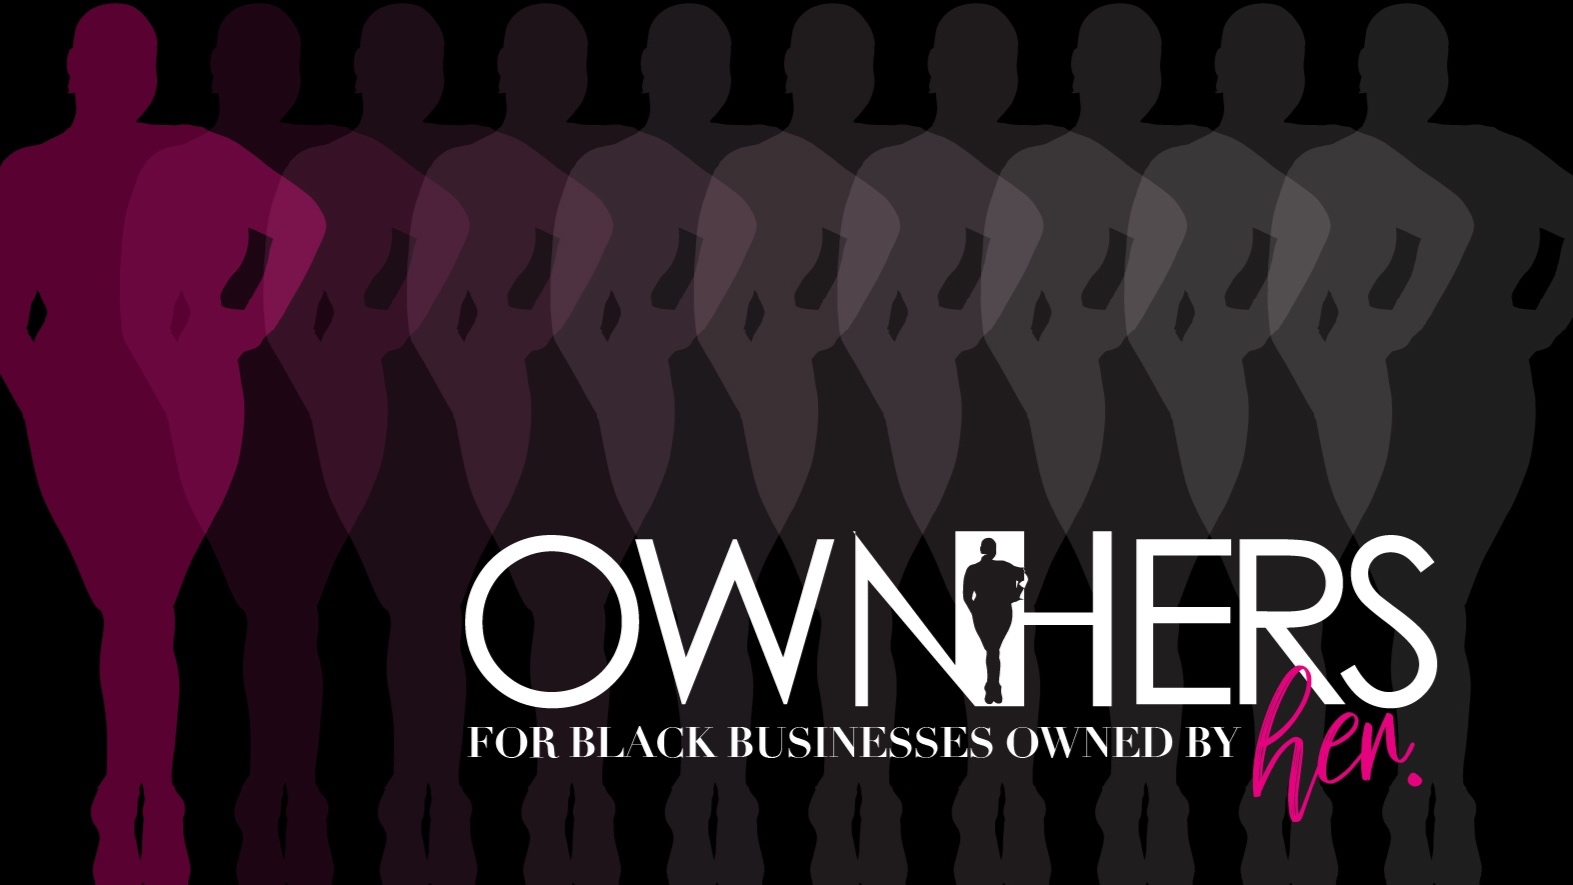 ownhers-businesscards-final-01.jpg